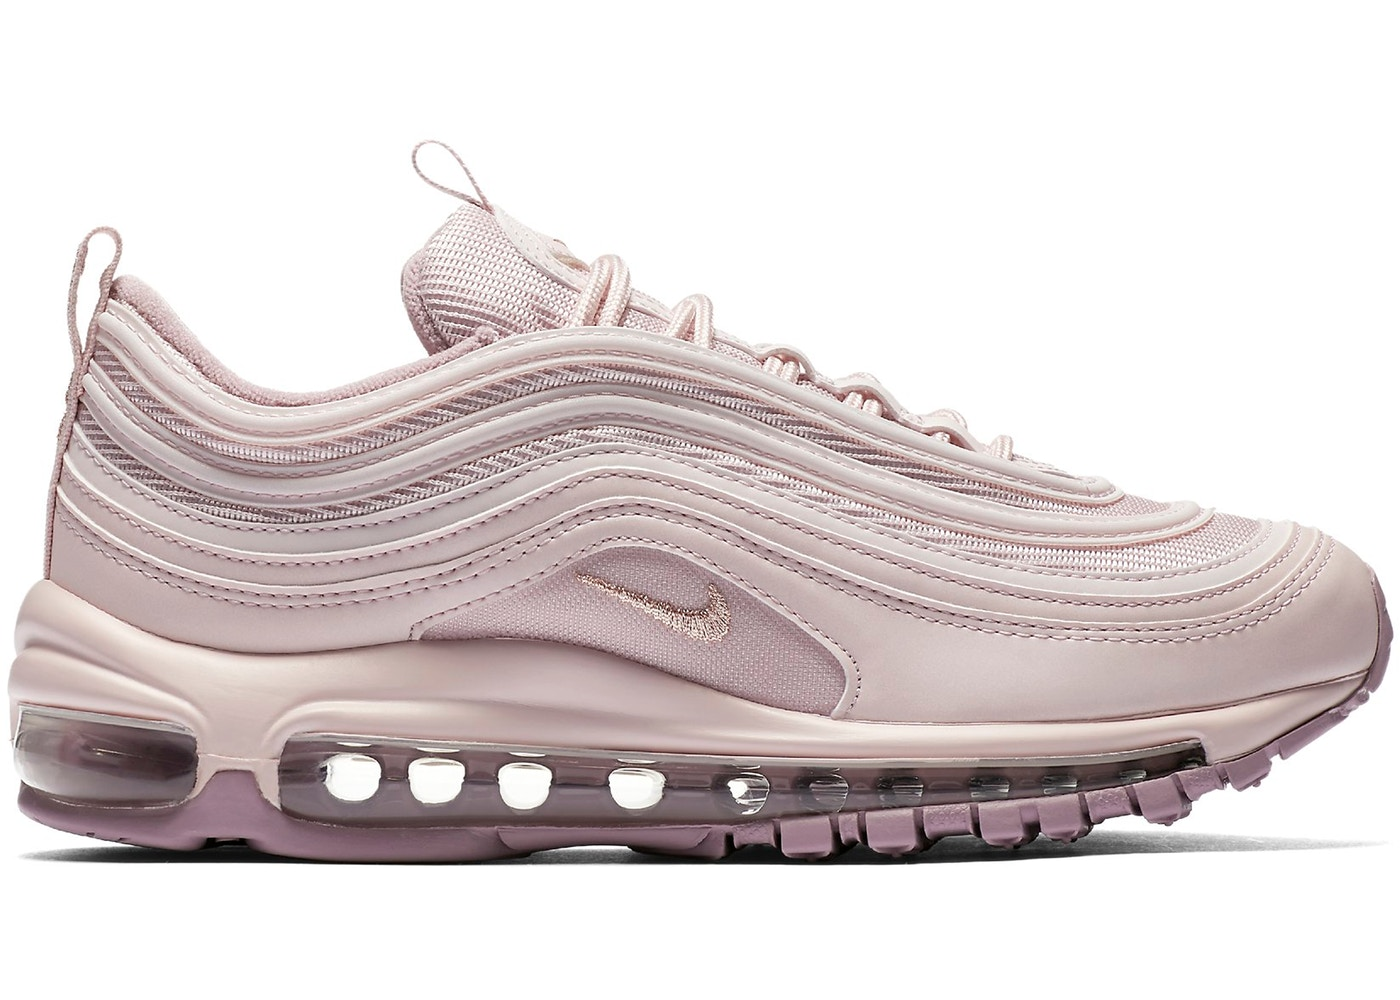 fc2d67fcf7 ... Air Max 97 Barely Rose (W) - AR1911-600 Nike ...